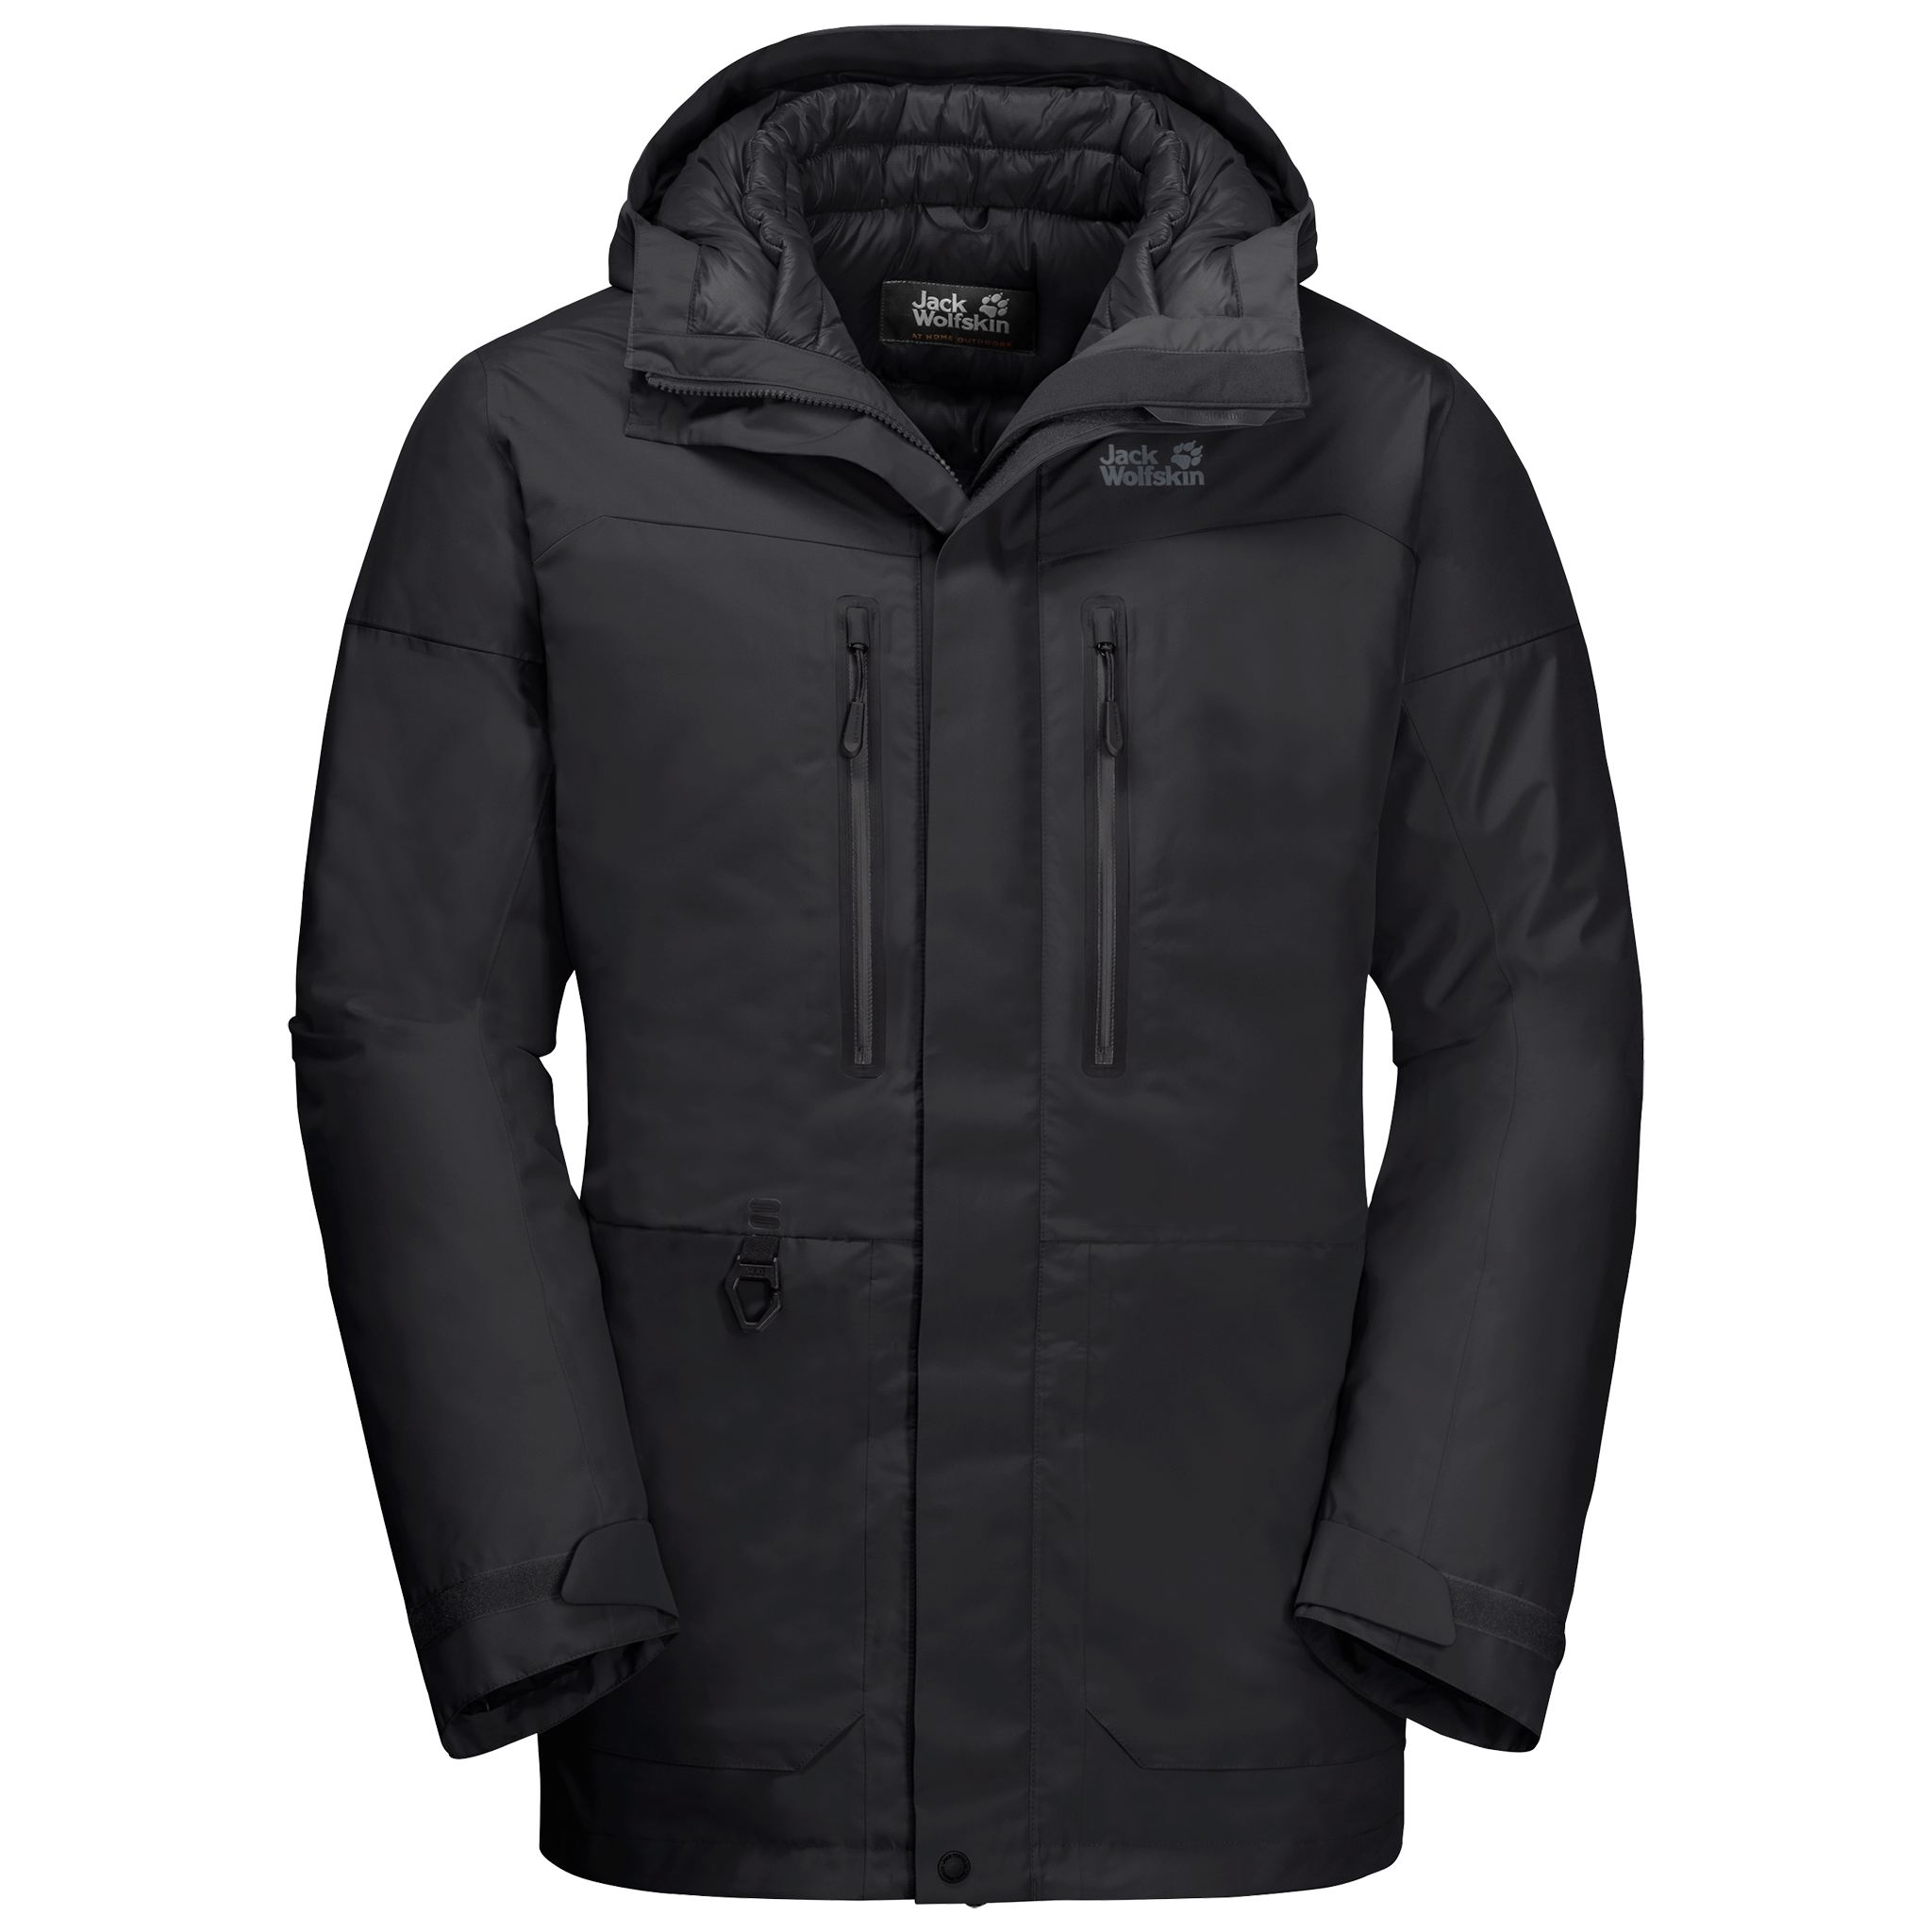 Куртка мужская NORTH ICE PARKA Jack Wolfskin — фото 1